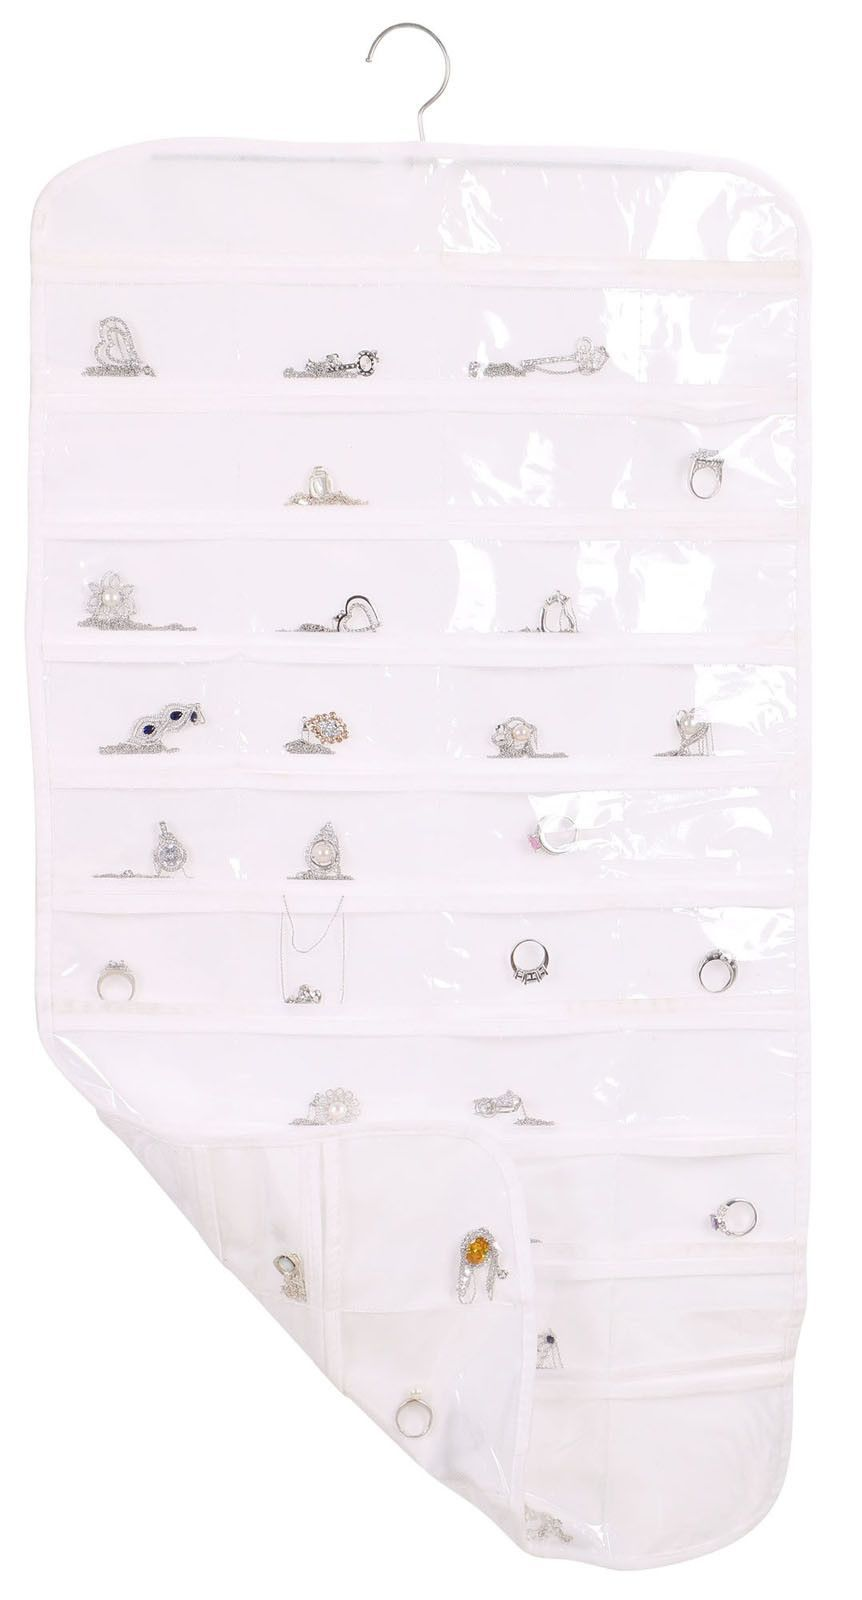 80 Pocket Hanging DualSided Jewelry Organizer White For the Home